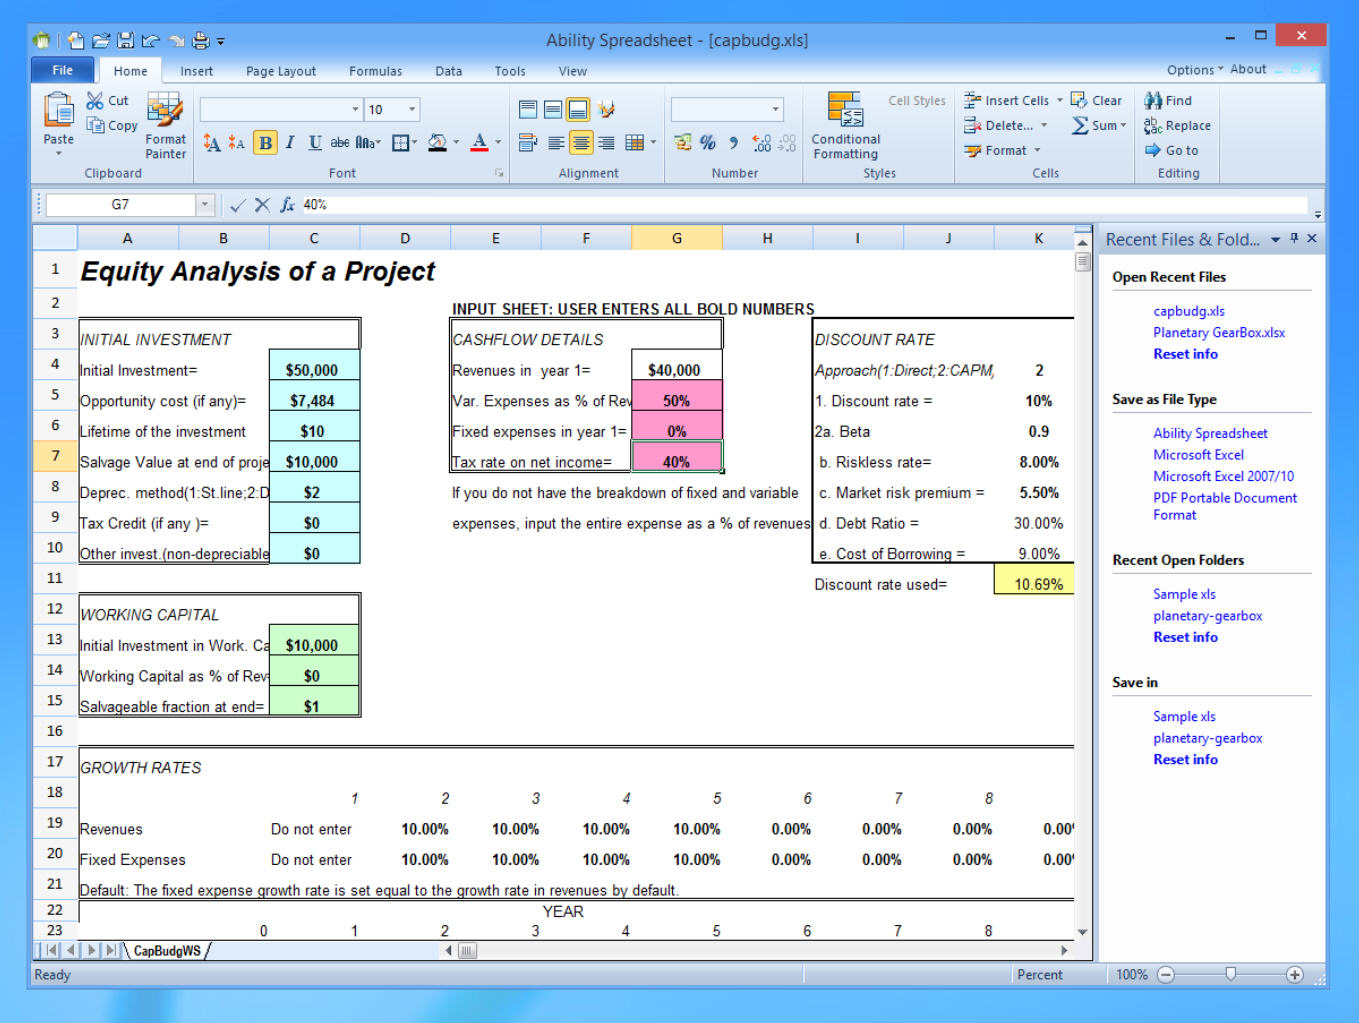 Ability Spreadsheet Regarding Get Ability Office 6 Standard, Worth $29.95, For Free At